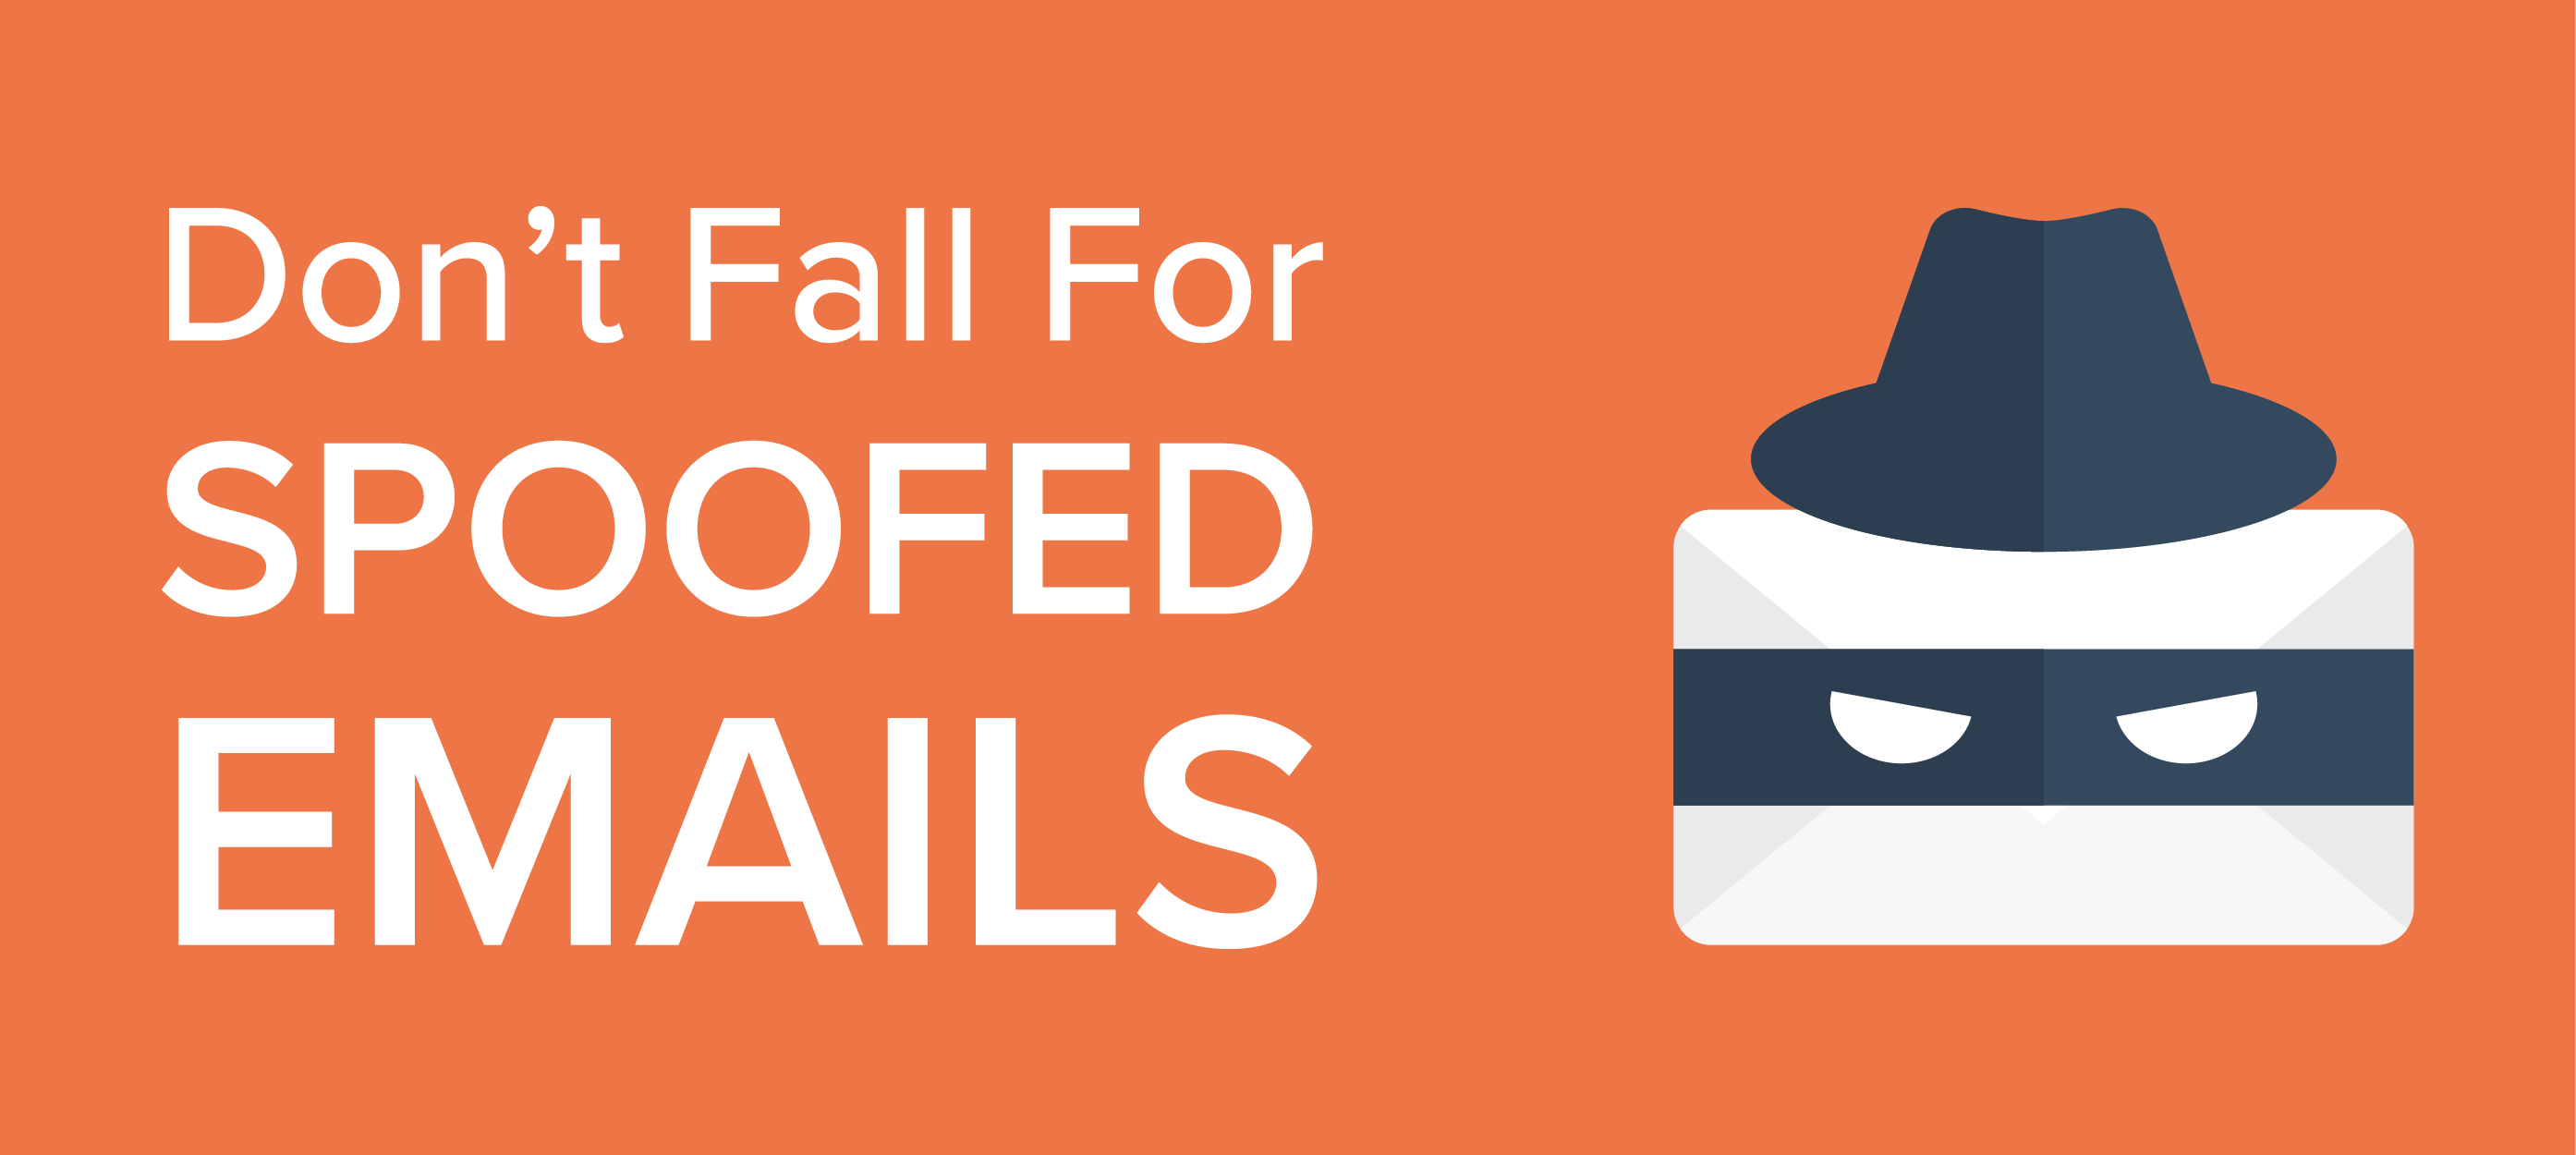 Don't Fall for Spoofed Emails